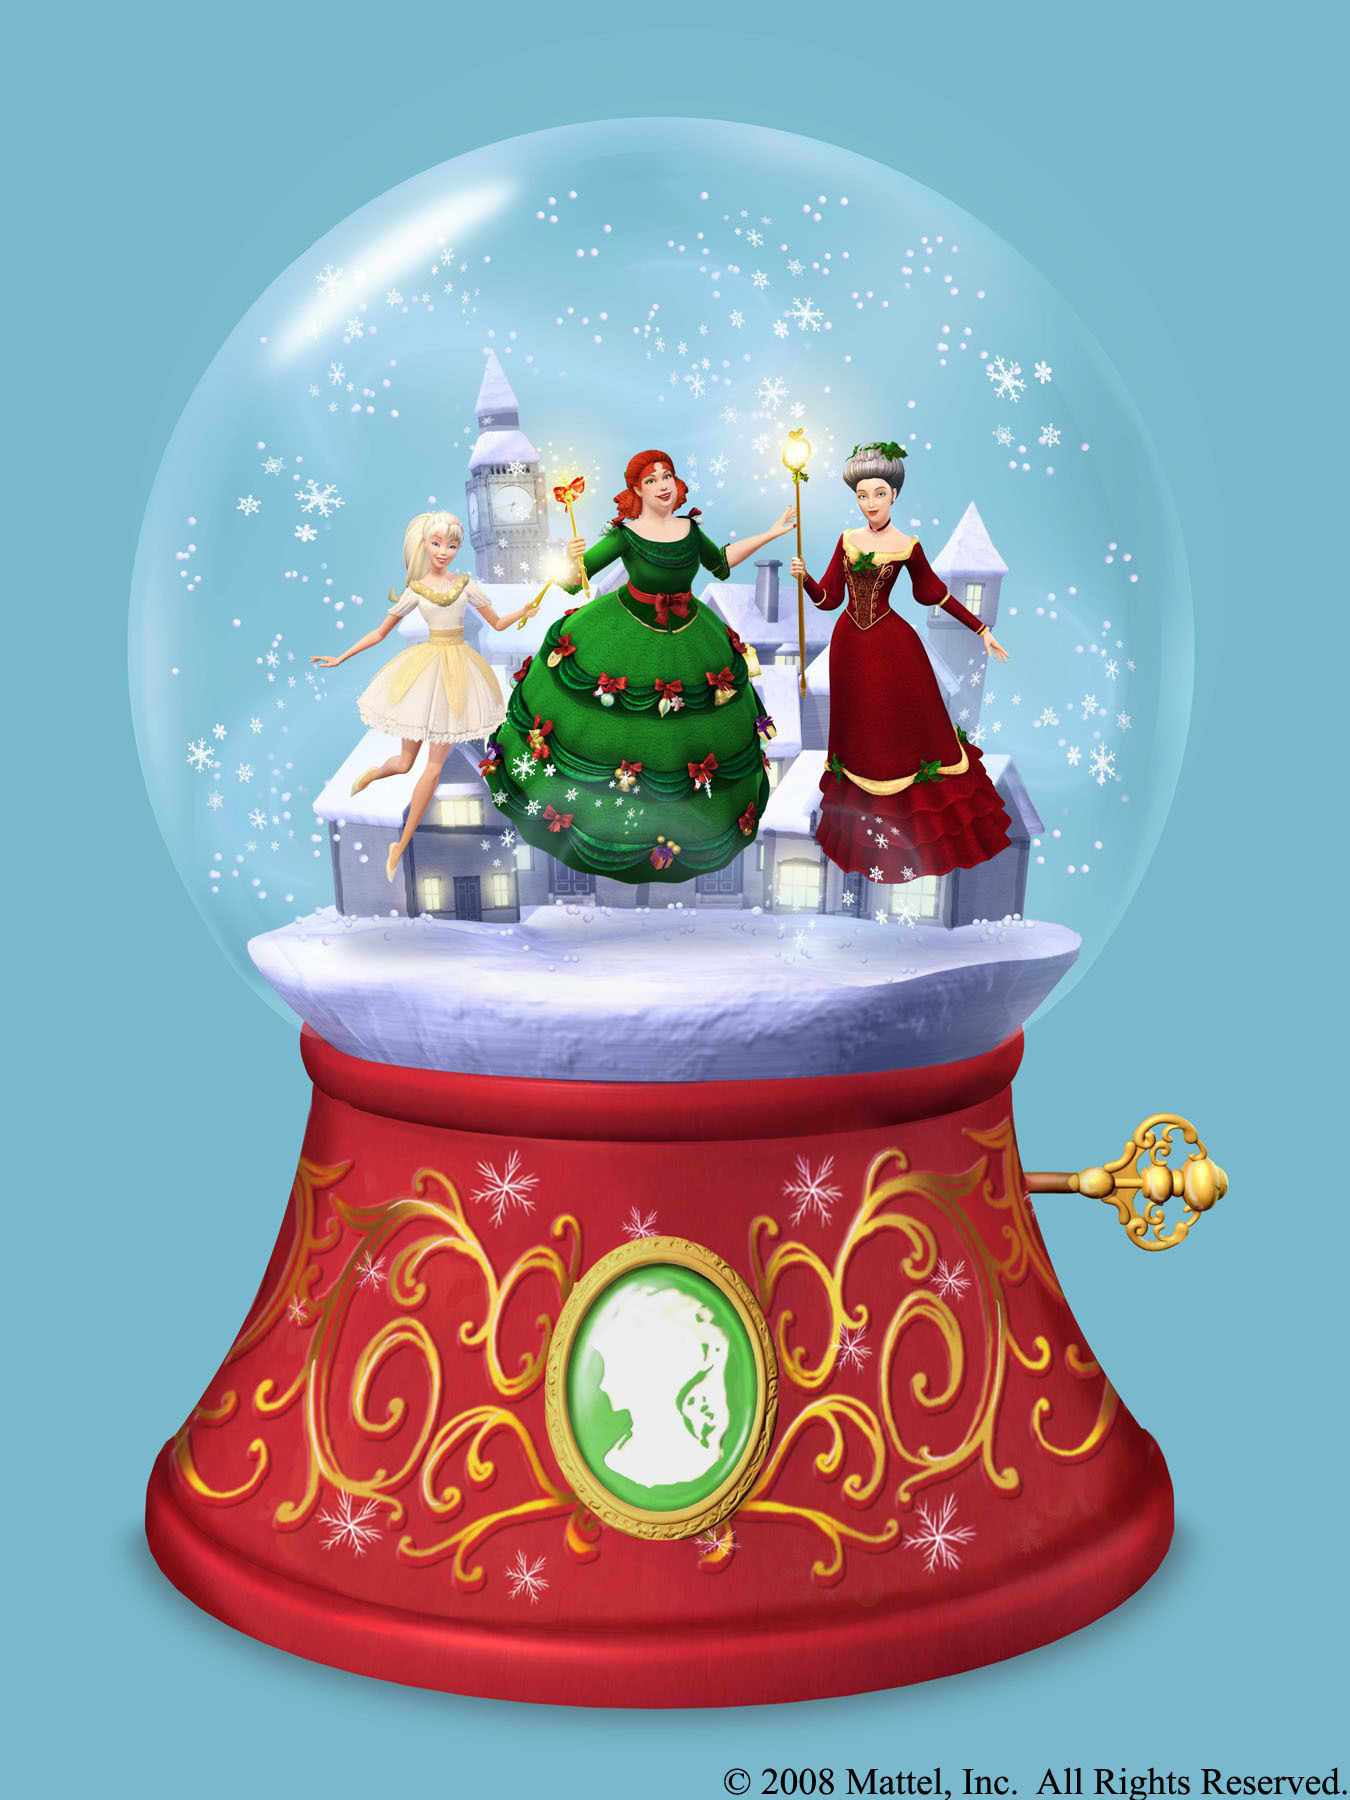 Barbie In A Christmas Carol Images Snow Globe Hd Wallpaper And Background  Photos · Download Image